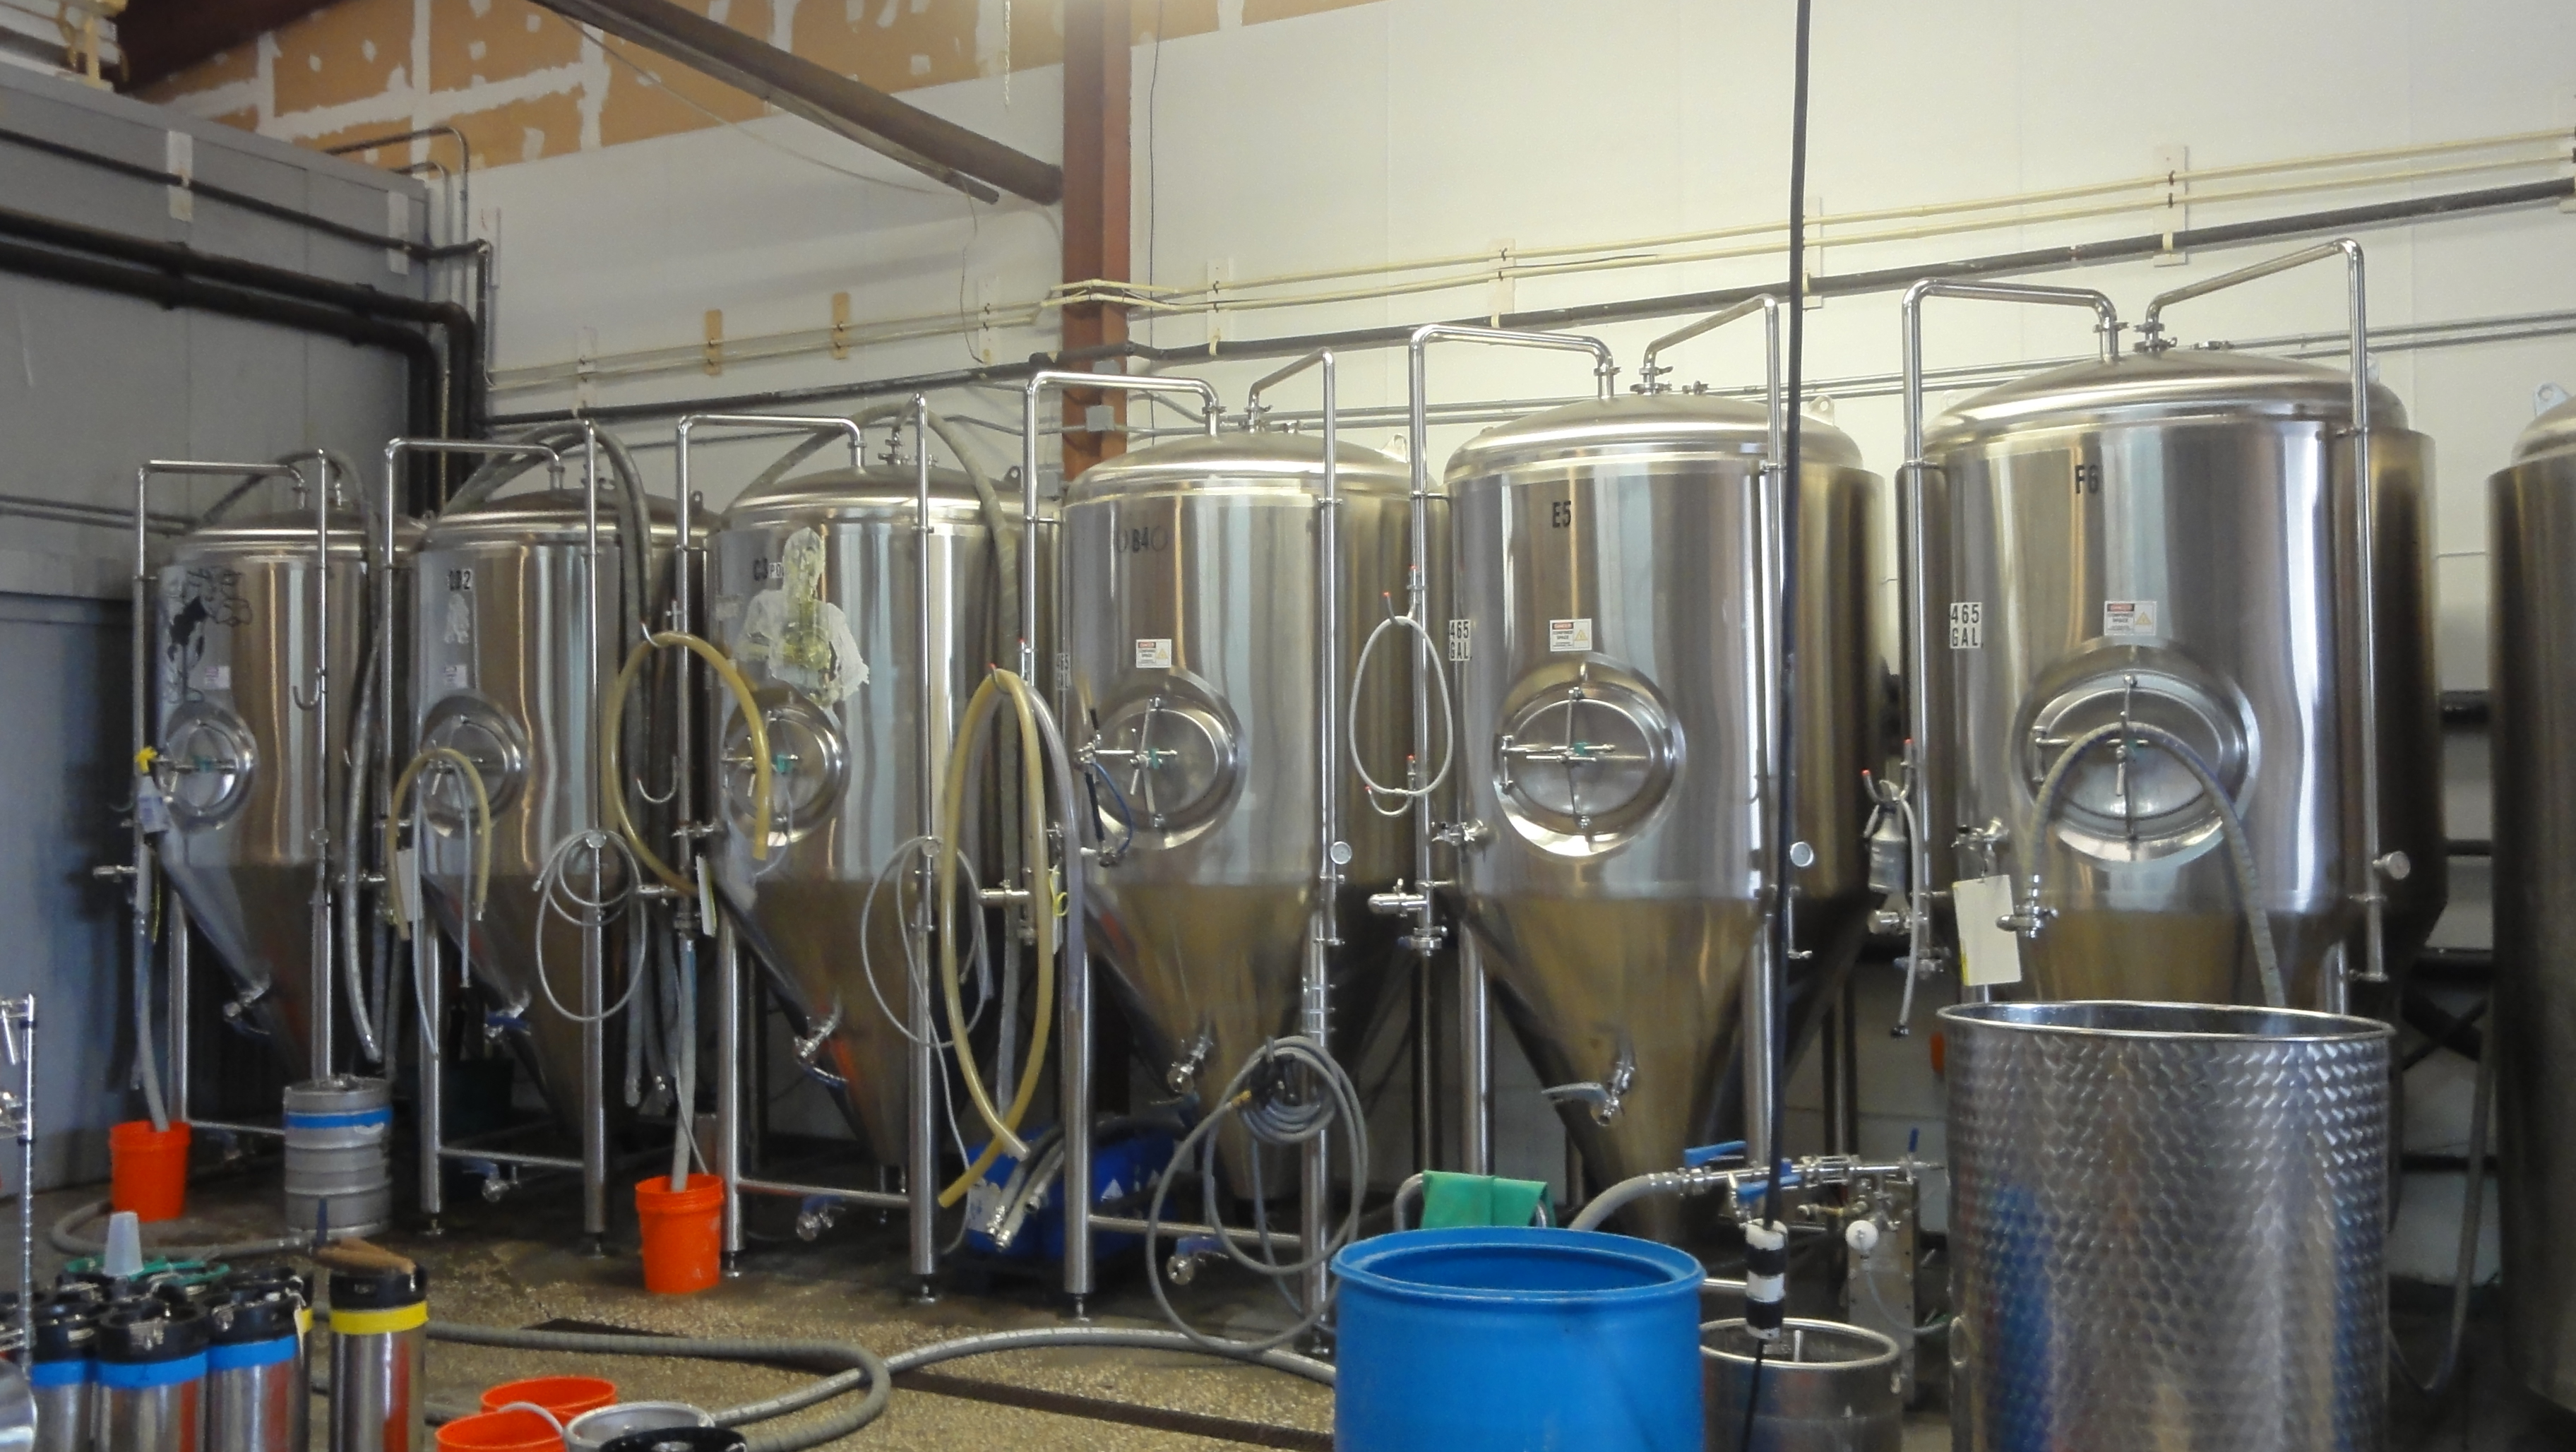 How much would it cost to start a microbrewery?